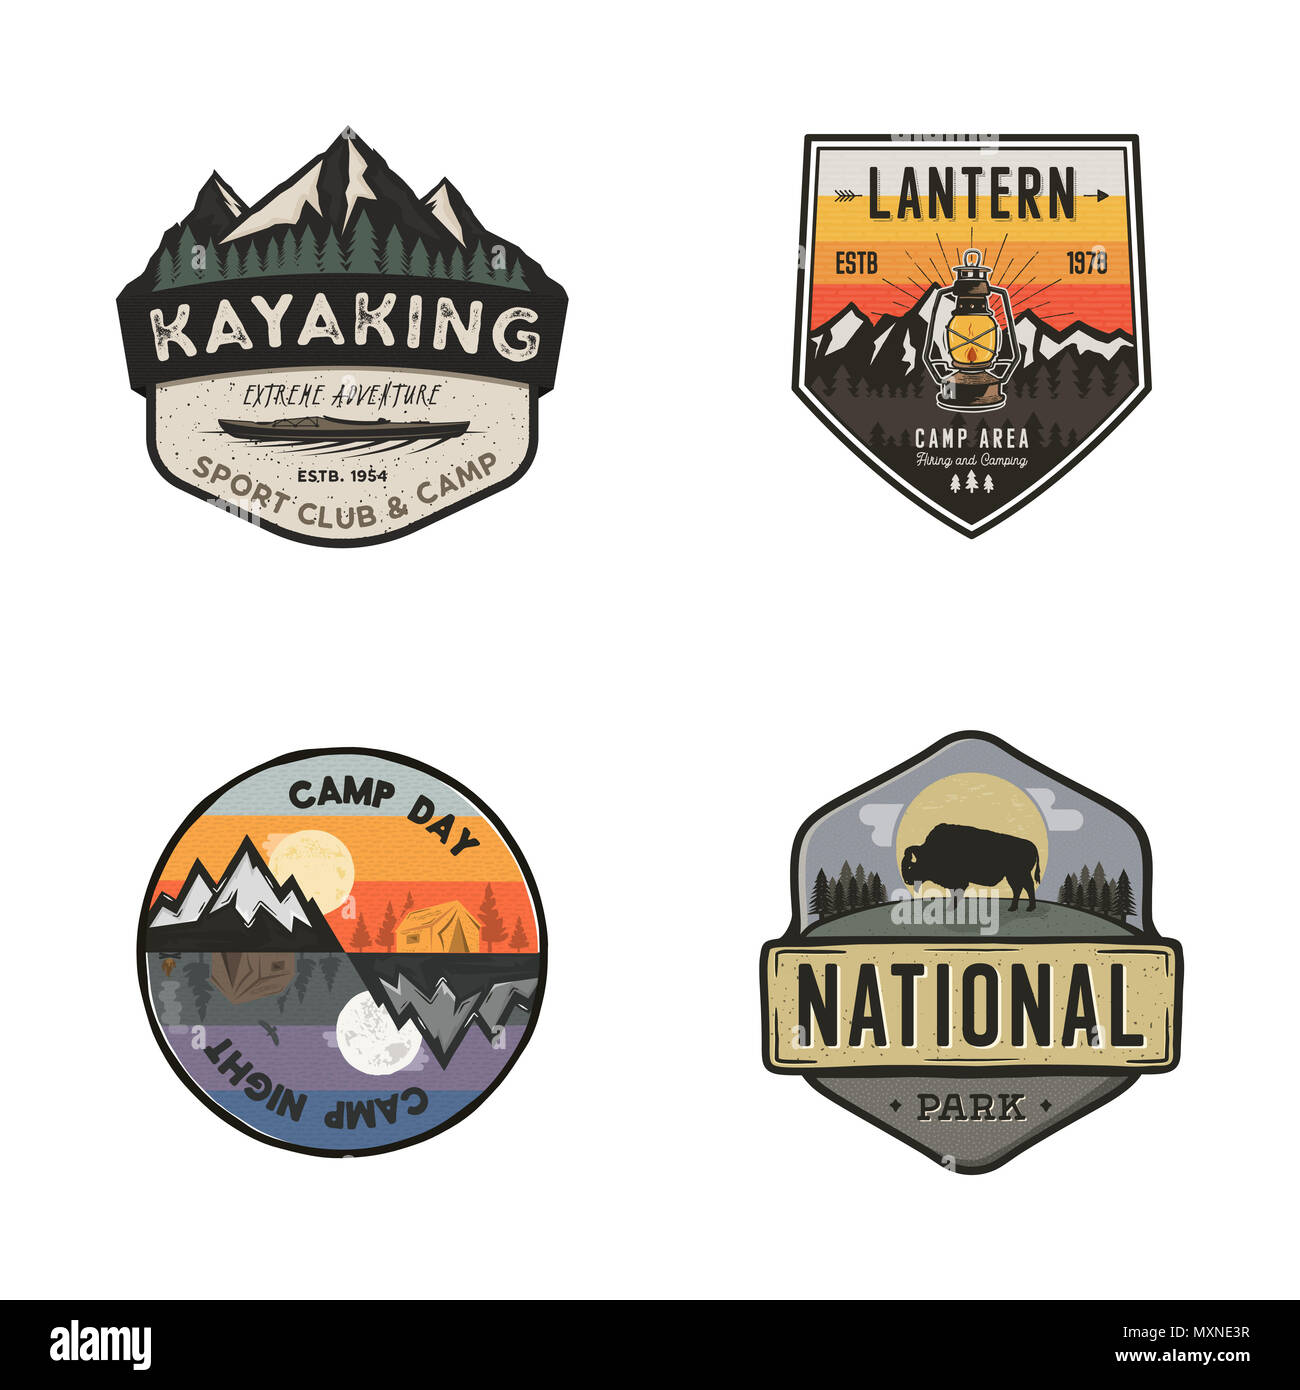 Set of vintage hand drawn travel logos. Hiking labels concepts. Mountain expedition badge designs. Travel logos, camp logotypes collection. Stock retro patches isolated on white background - Stock Image